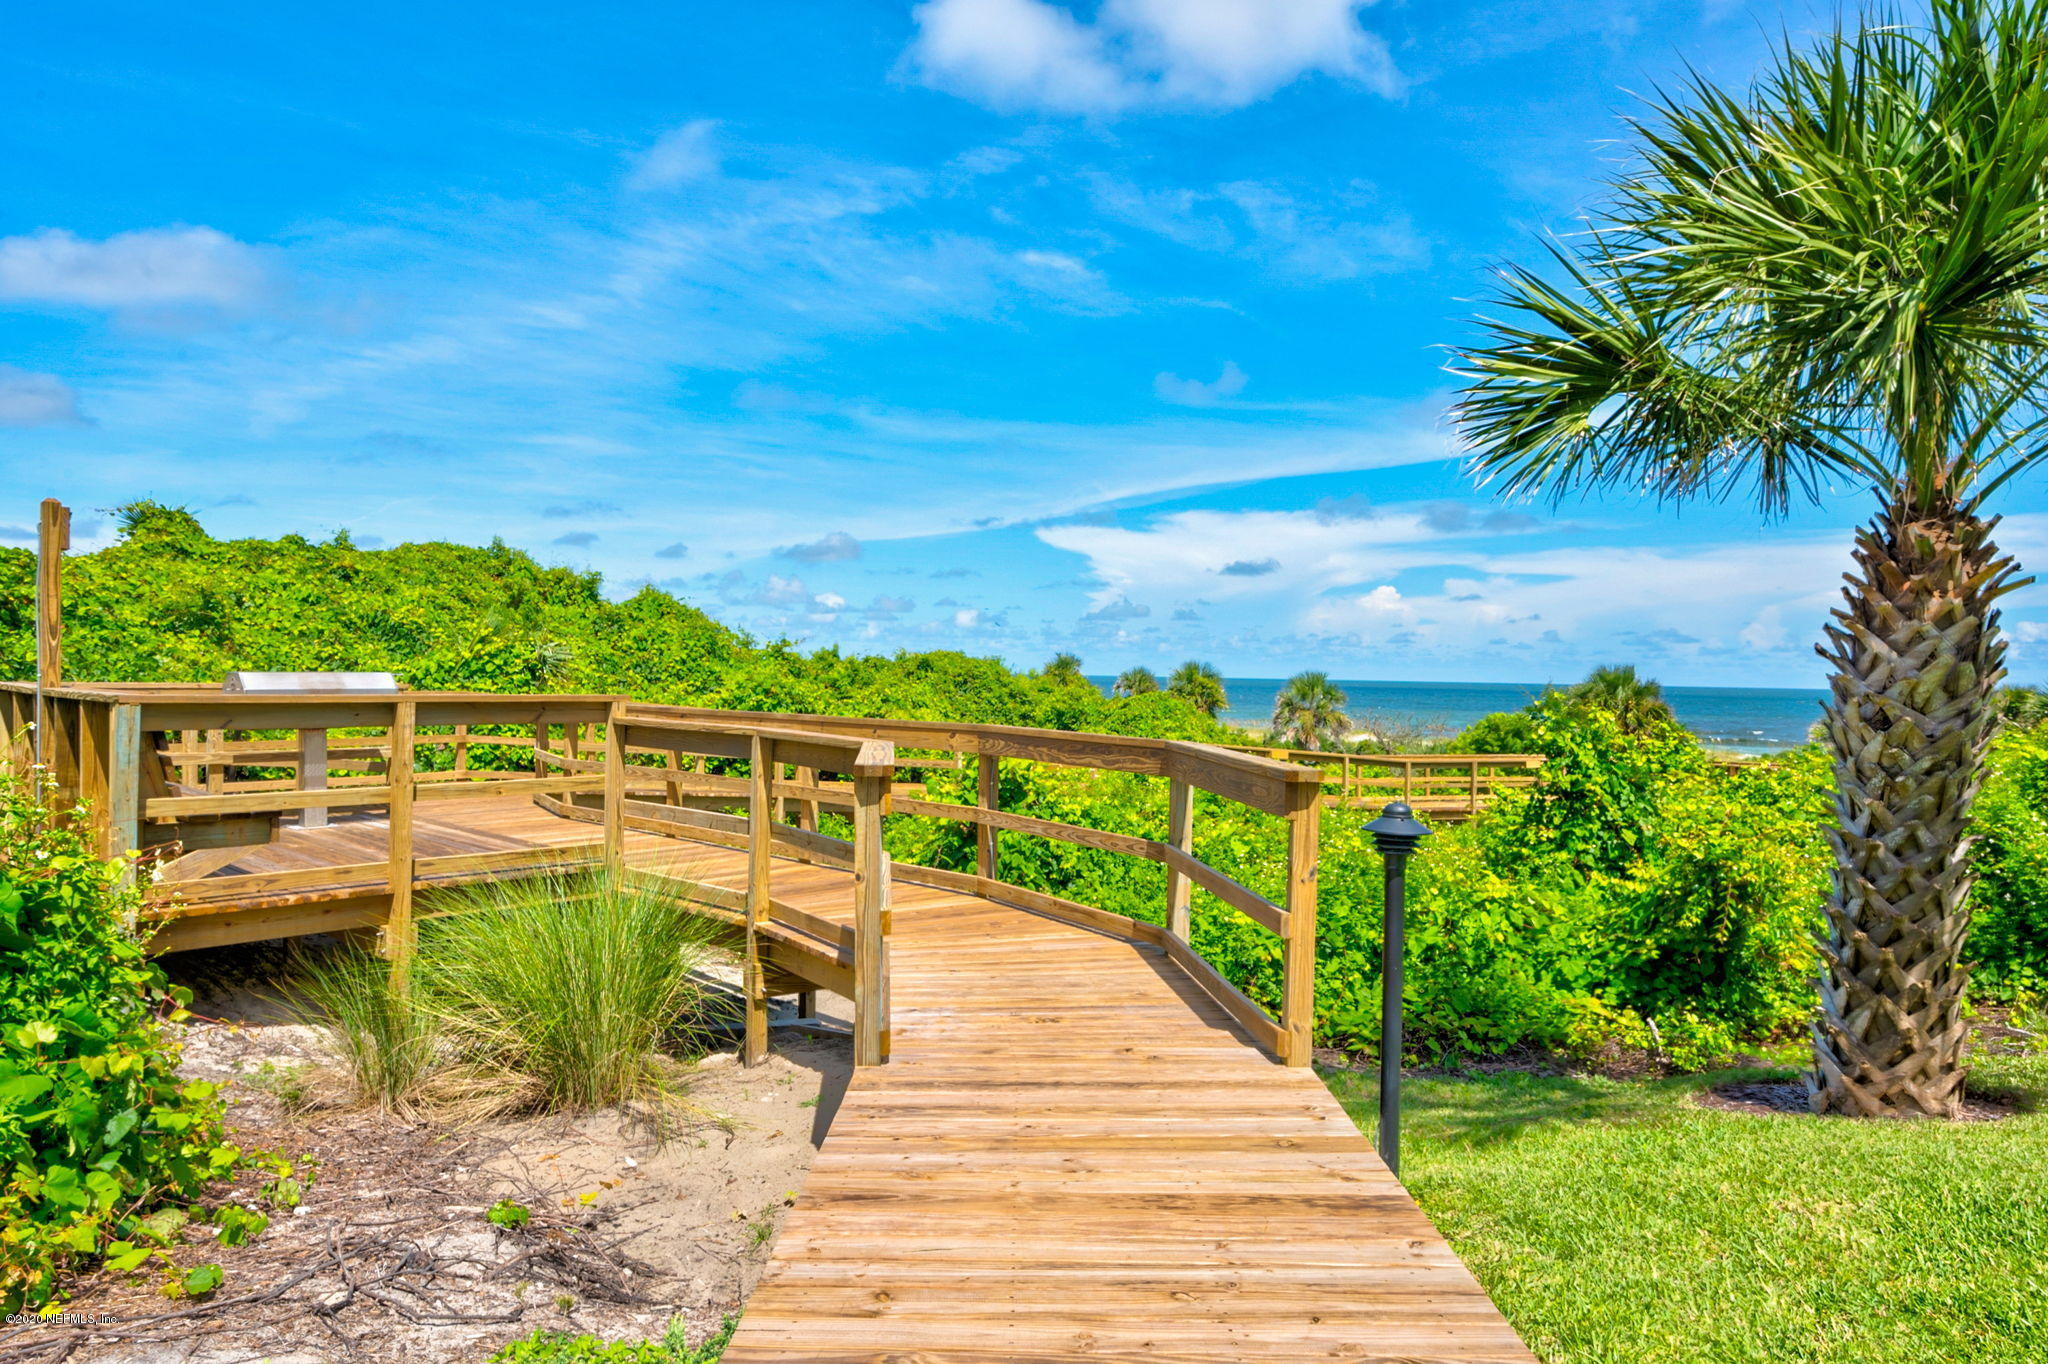 1003 CAPTAINS, FERNANDINA BEACH, FLORIDA 32034, 2 Bedrooms Bedrooms, ,2 BathroomsBathrooms,Residential,For sale,CAPTAINS,1072853